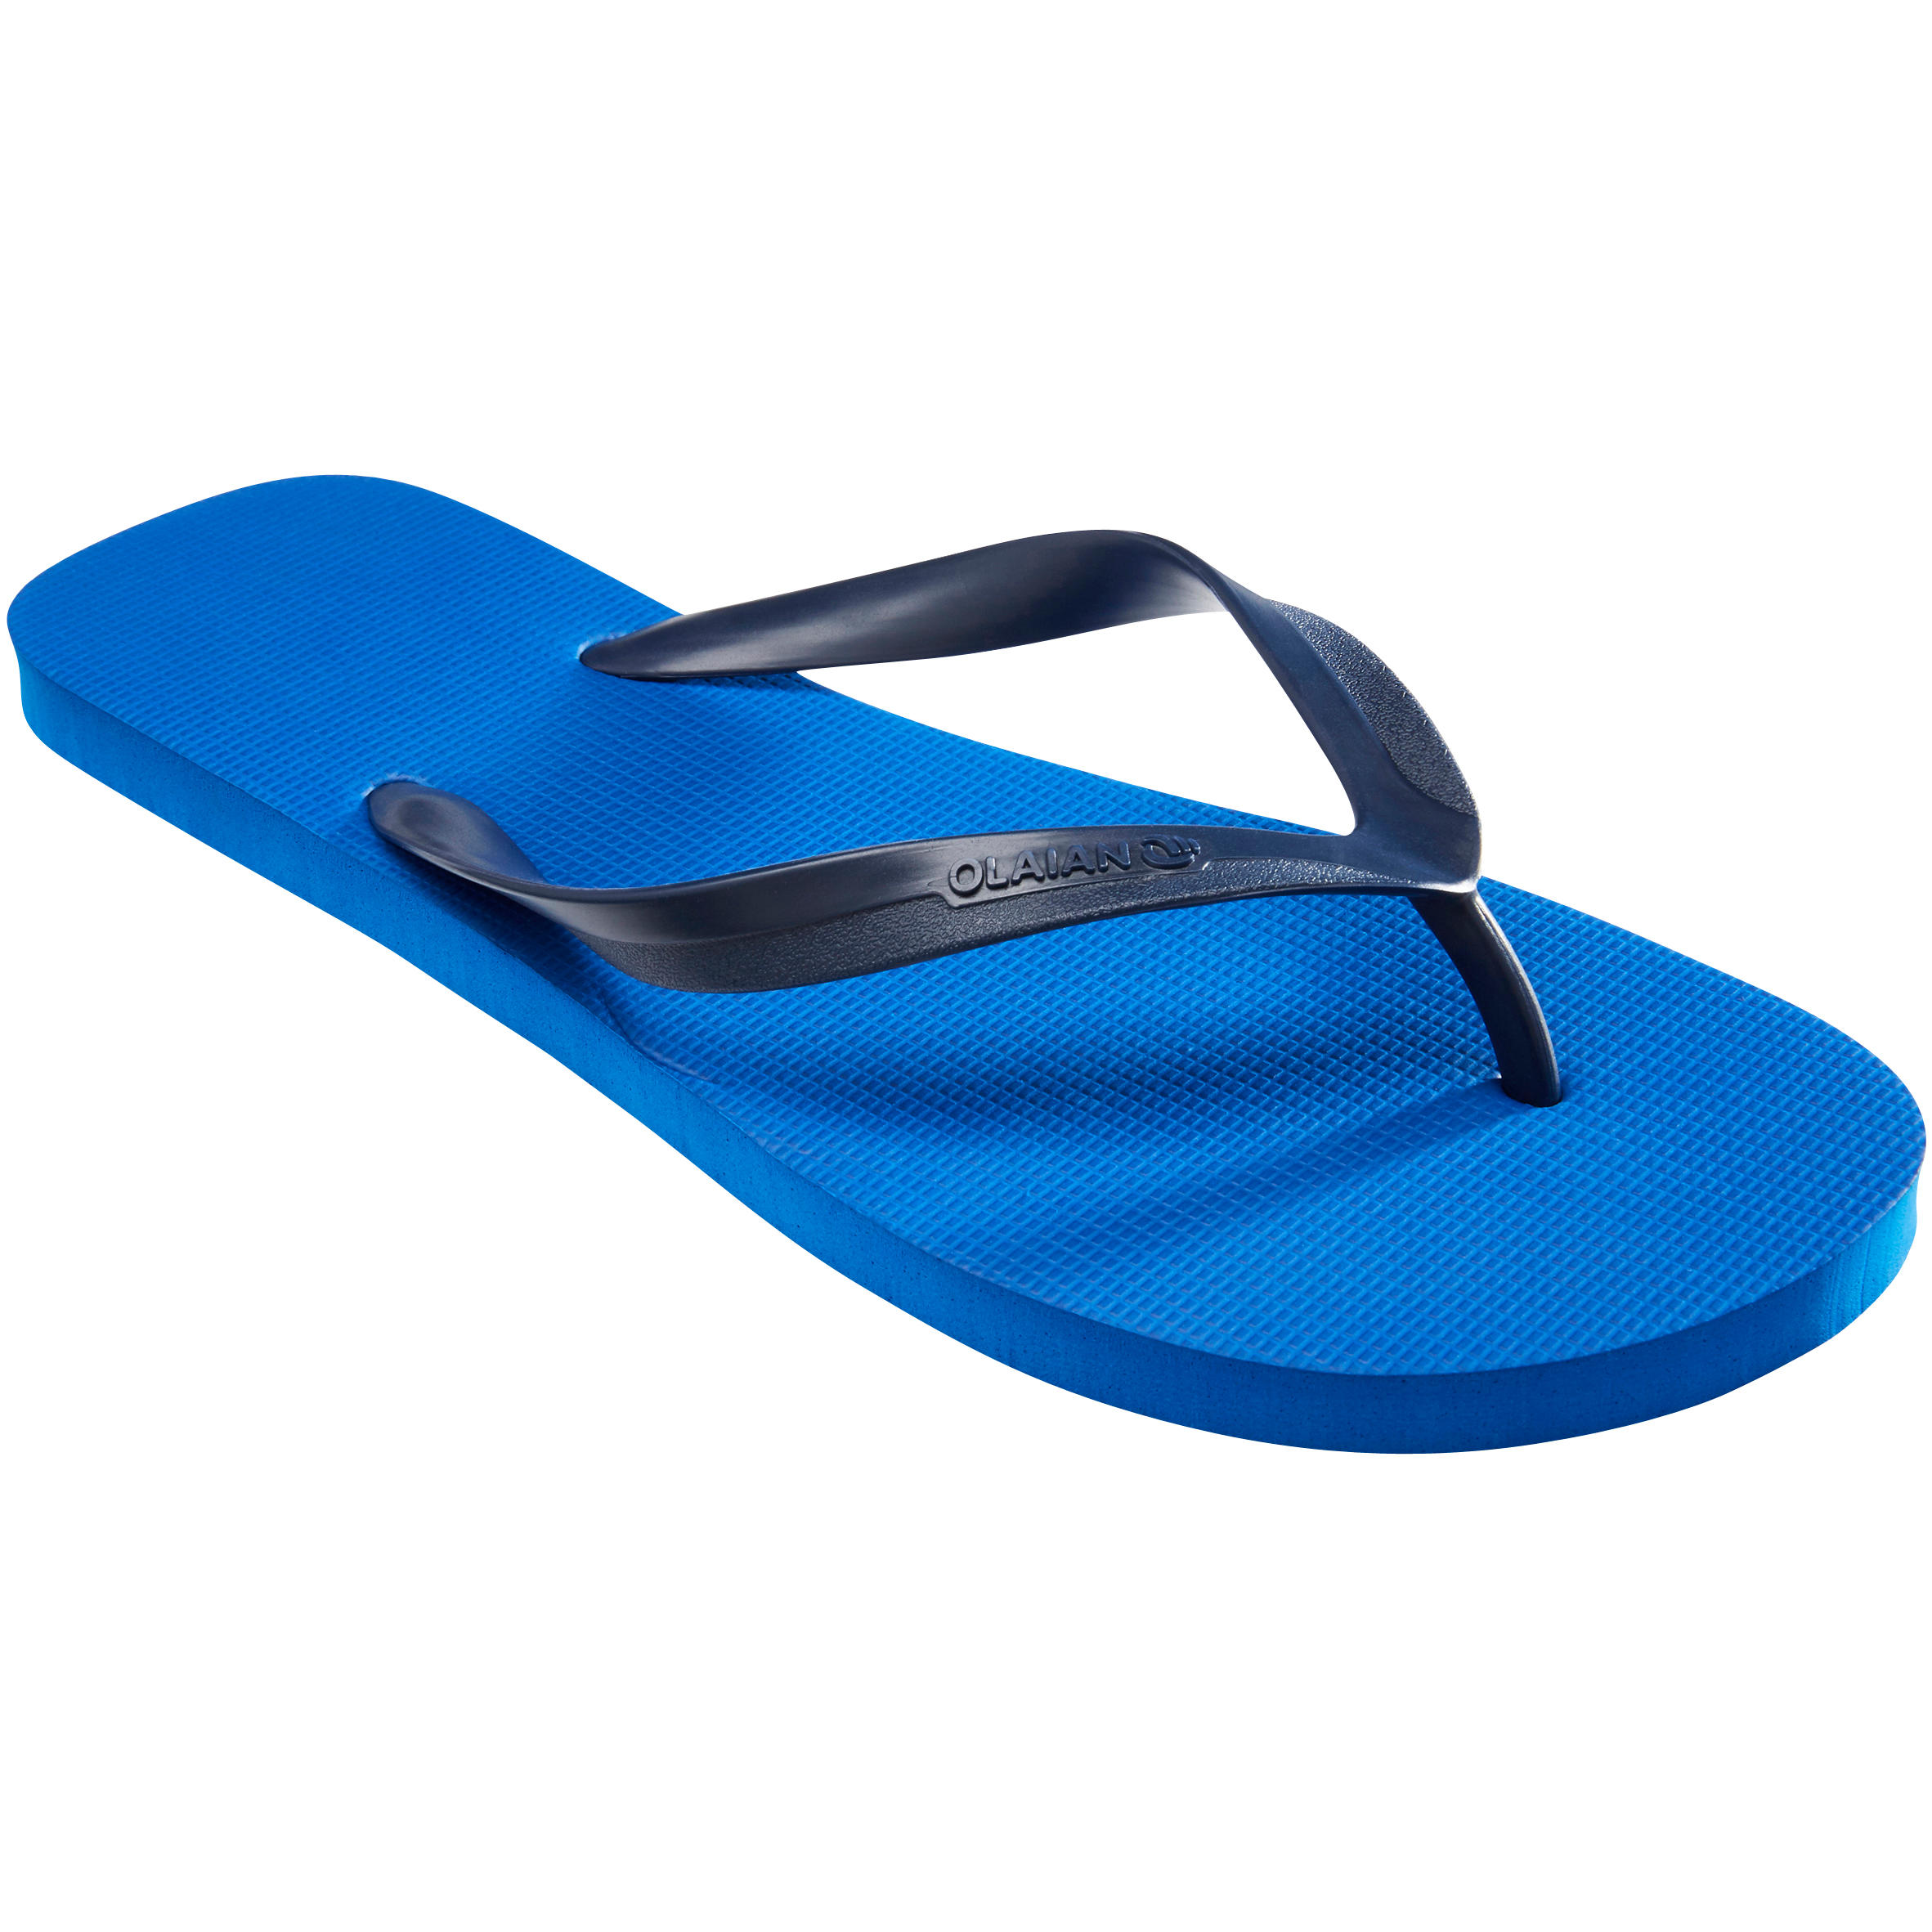 TO 100 M Men's Flip-Flops - Dark Blue